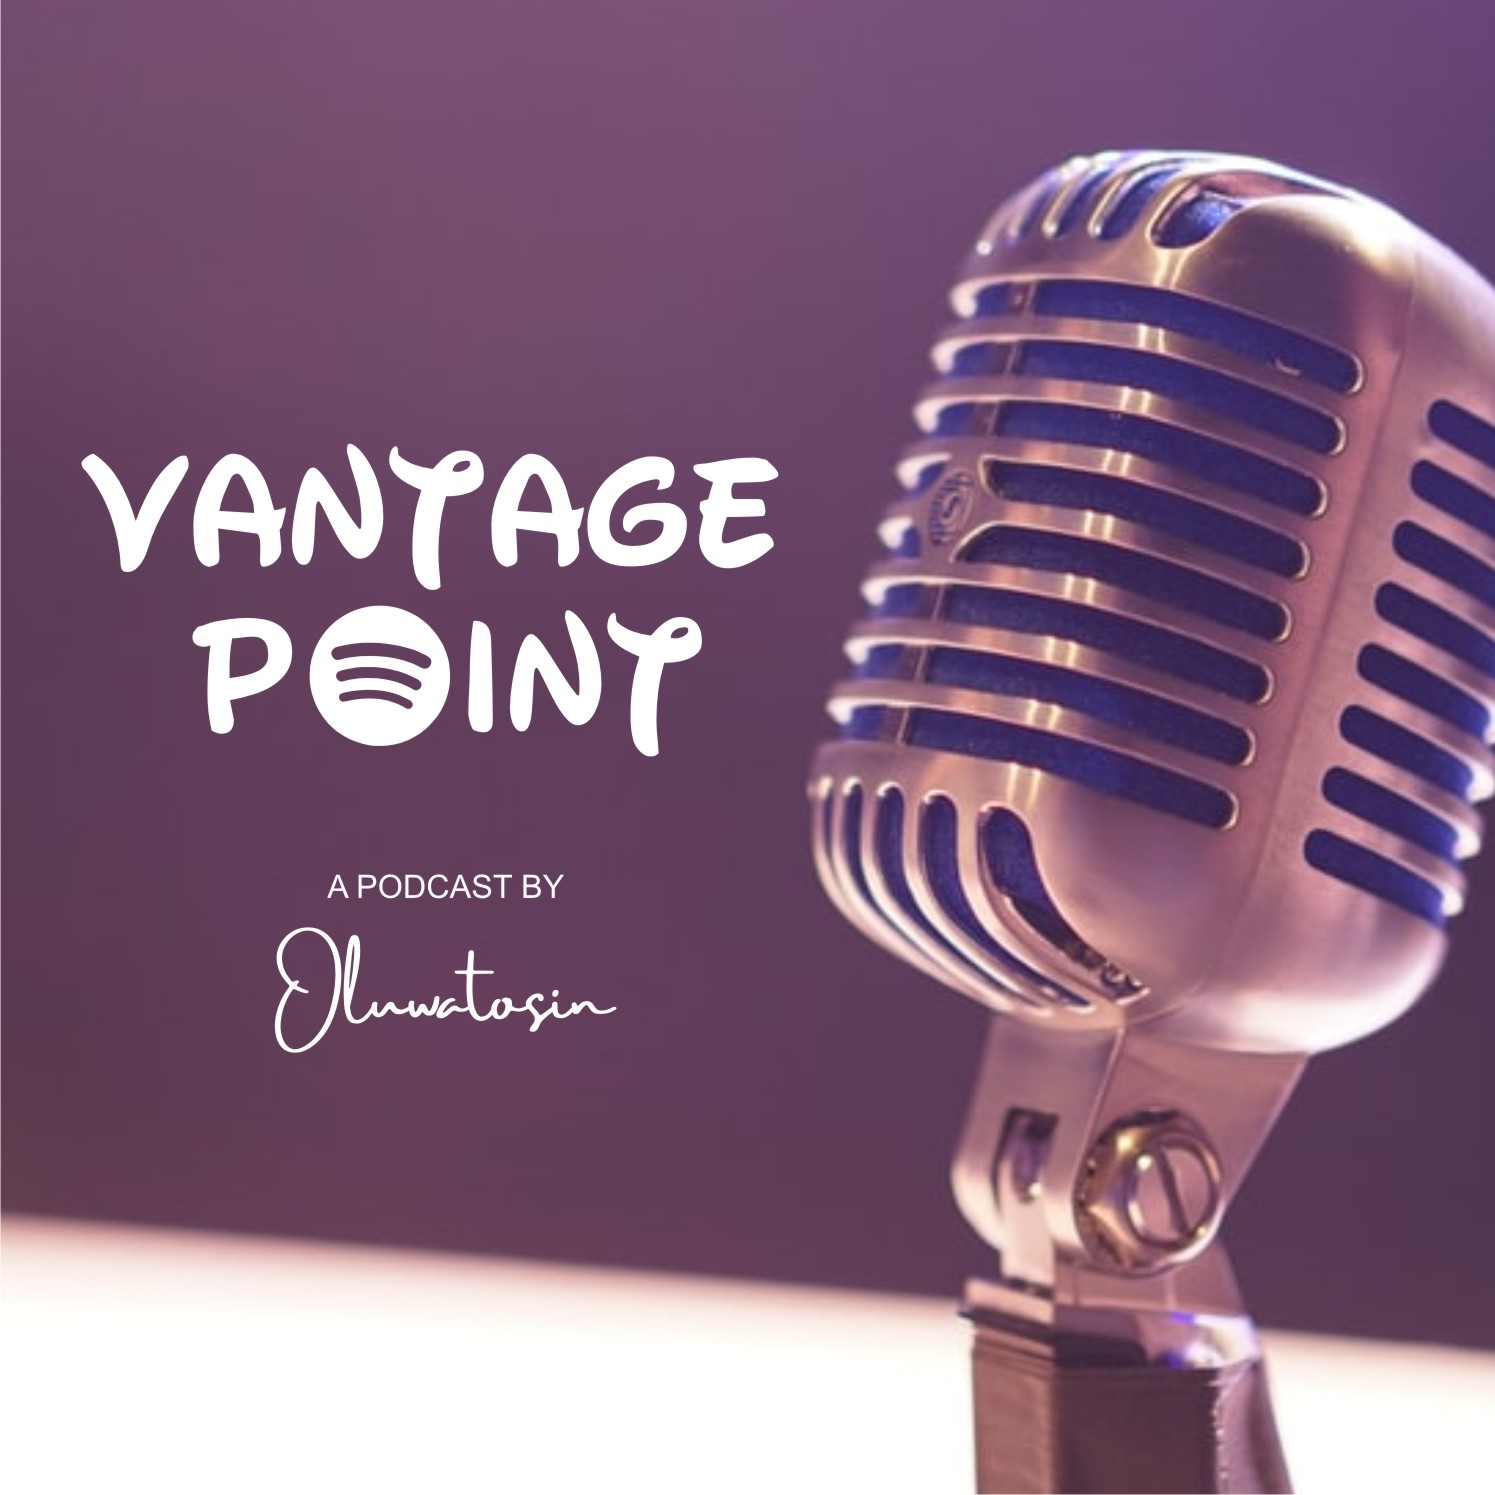 Vantage Point: Podcast by Oluwatosin, Episode 5 – Friends